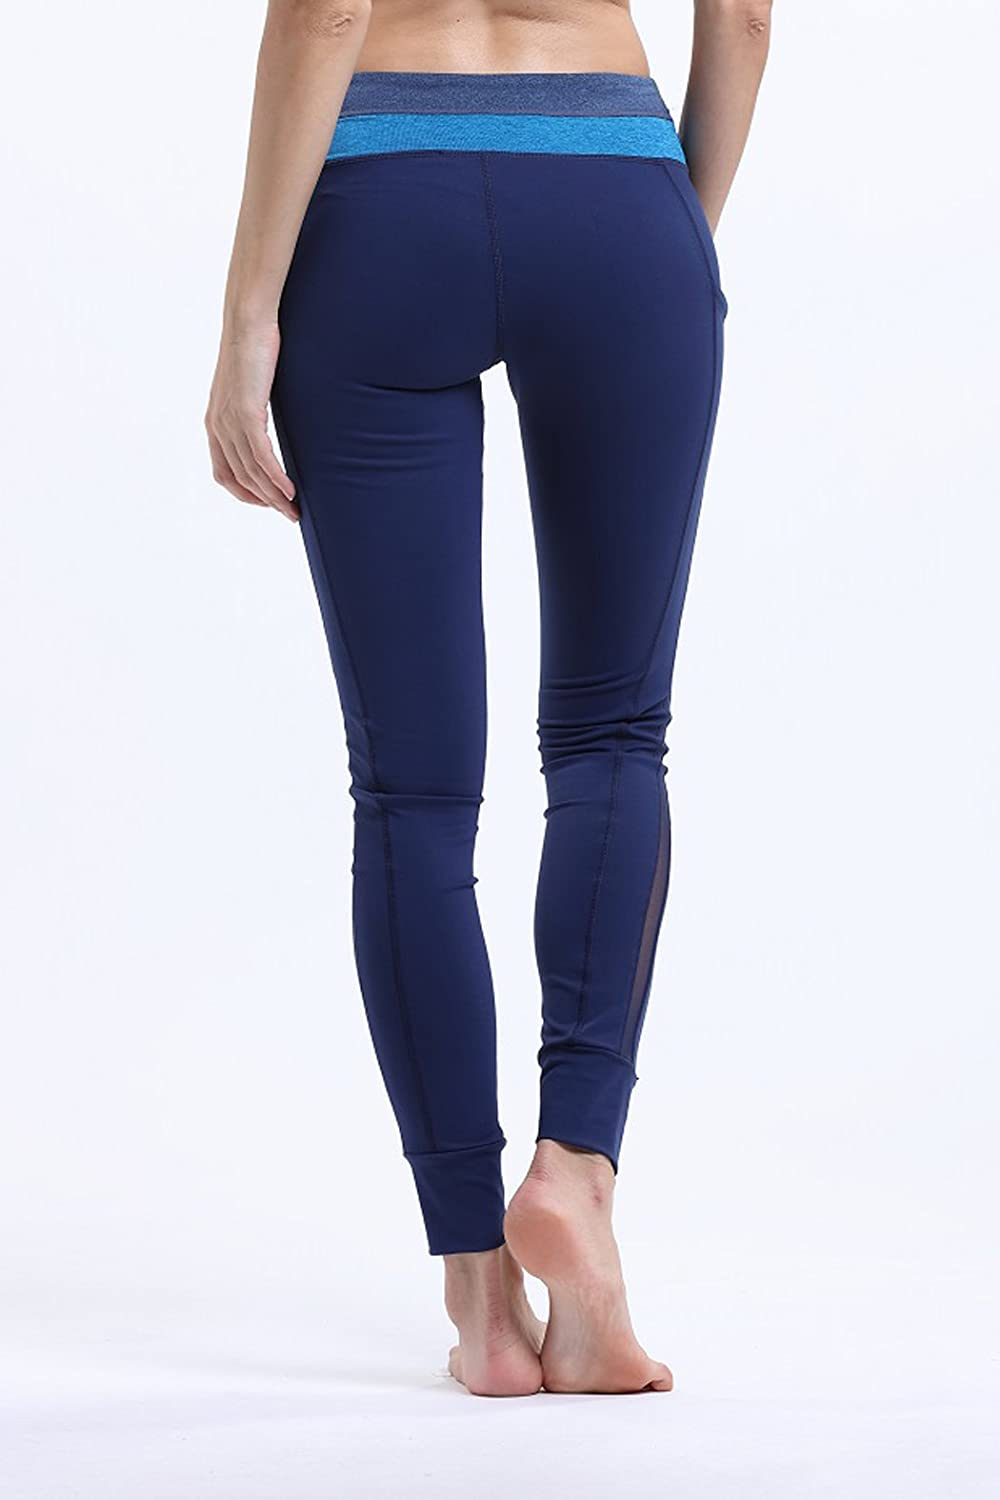 Melory Womens Power Flex Yoga Pants Mesh Patchwork Colorblock Workout Running Stretch Leggings Non See-Through Fabric